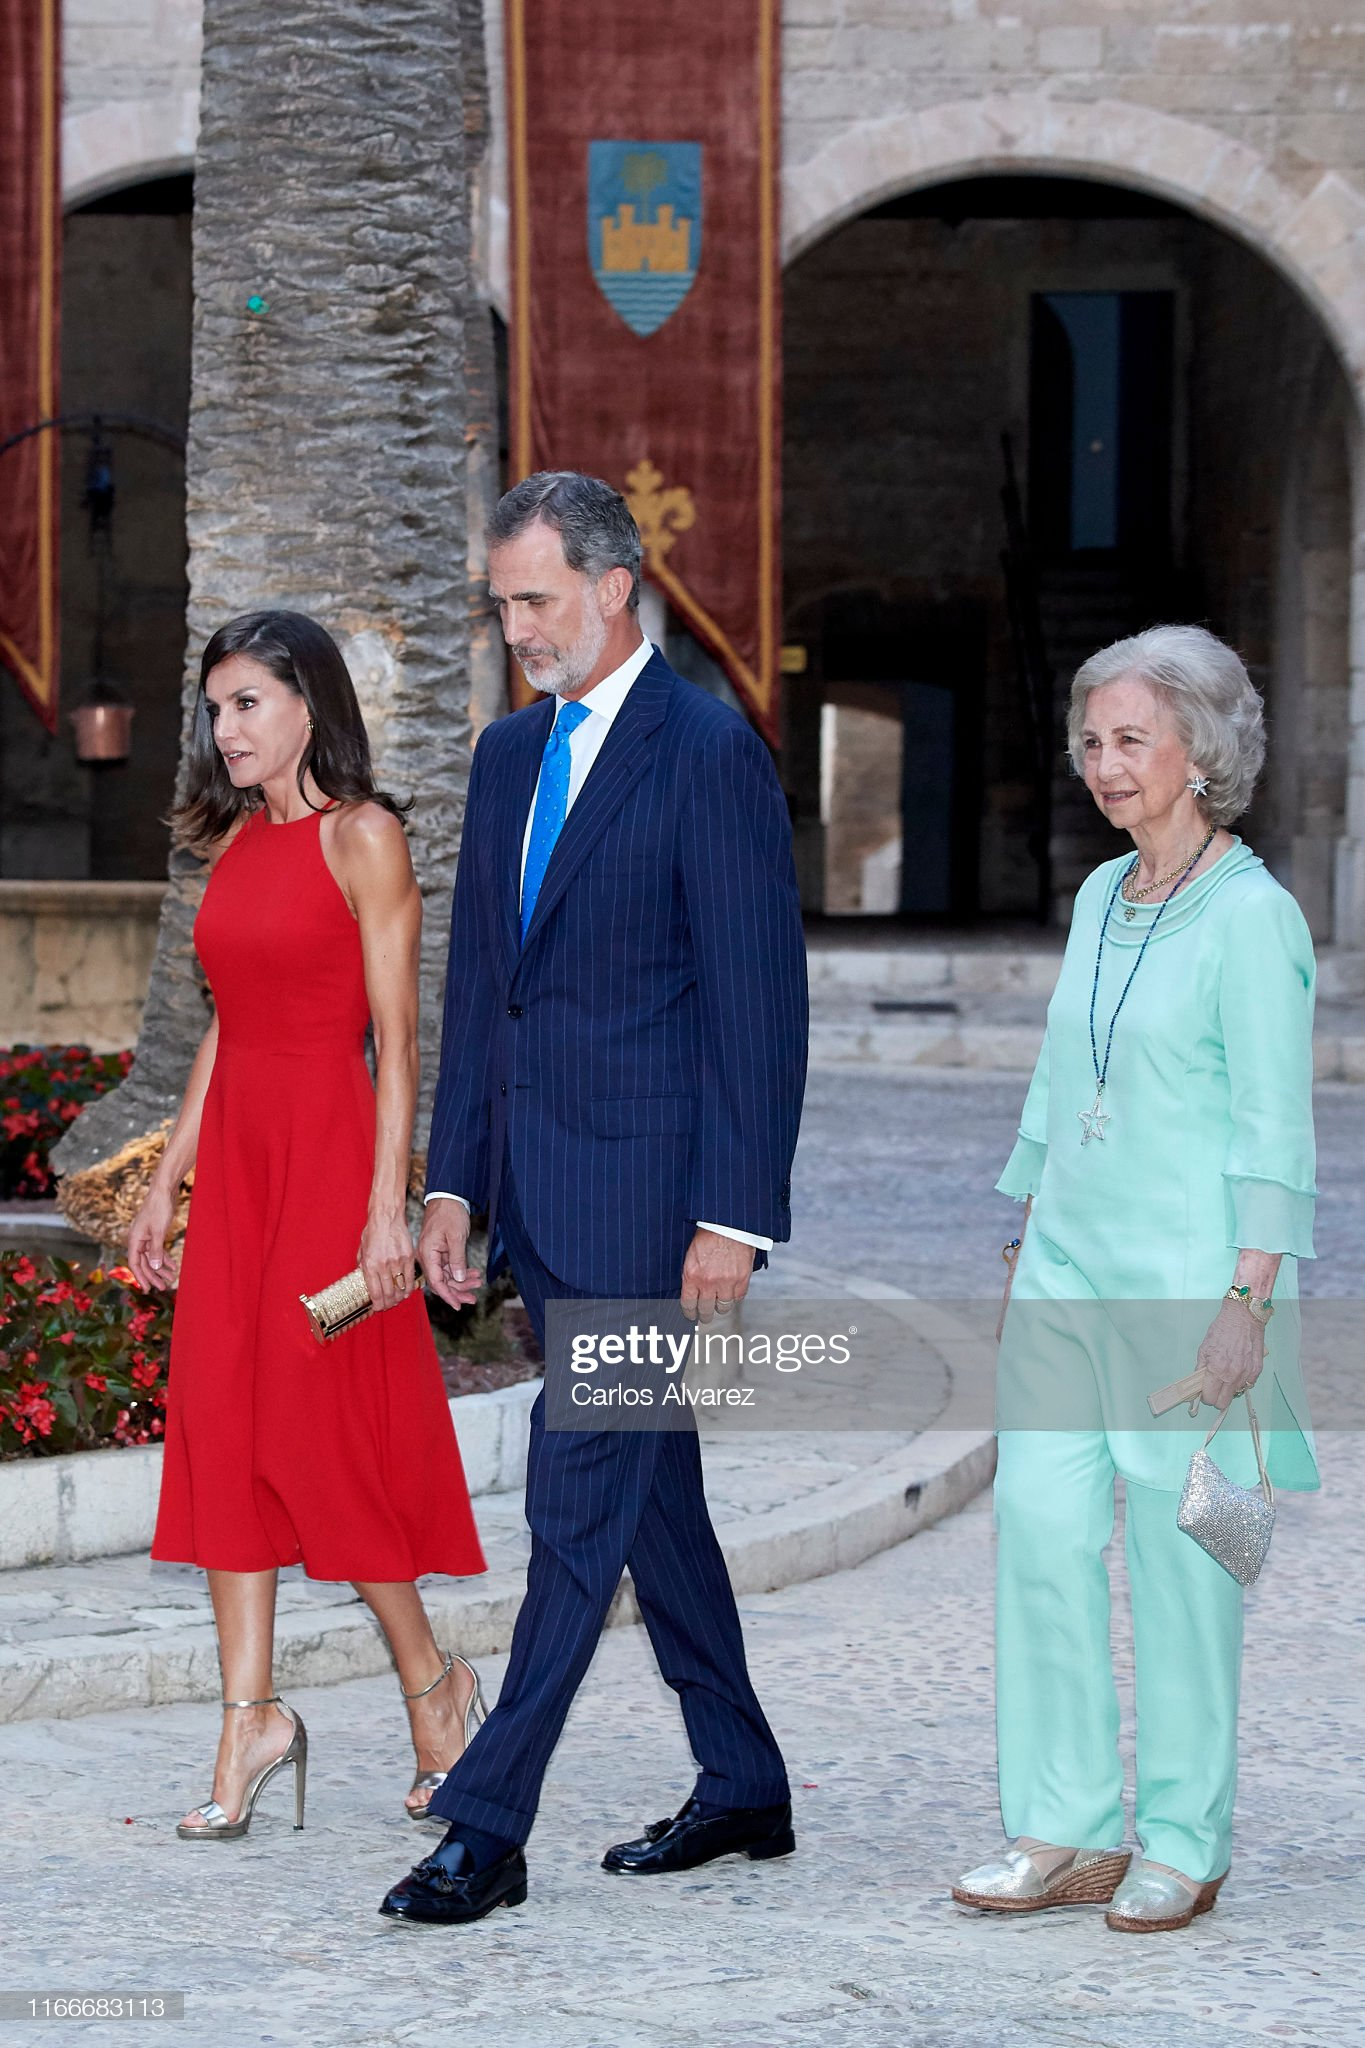 https://media.gettyimages.com/photos/king-felipe-vi-of-spain-queen-letizia-of-spain-and-queen-sofia-host-a-picture-id1166683113?s=2048x2048